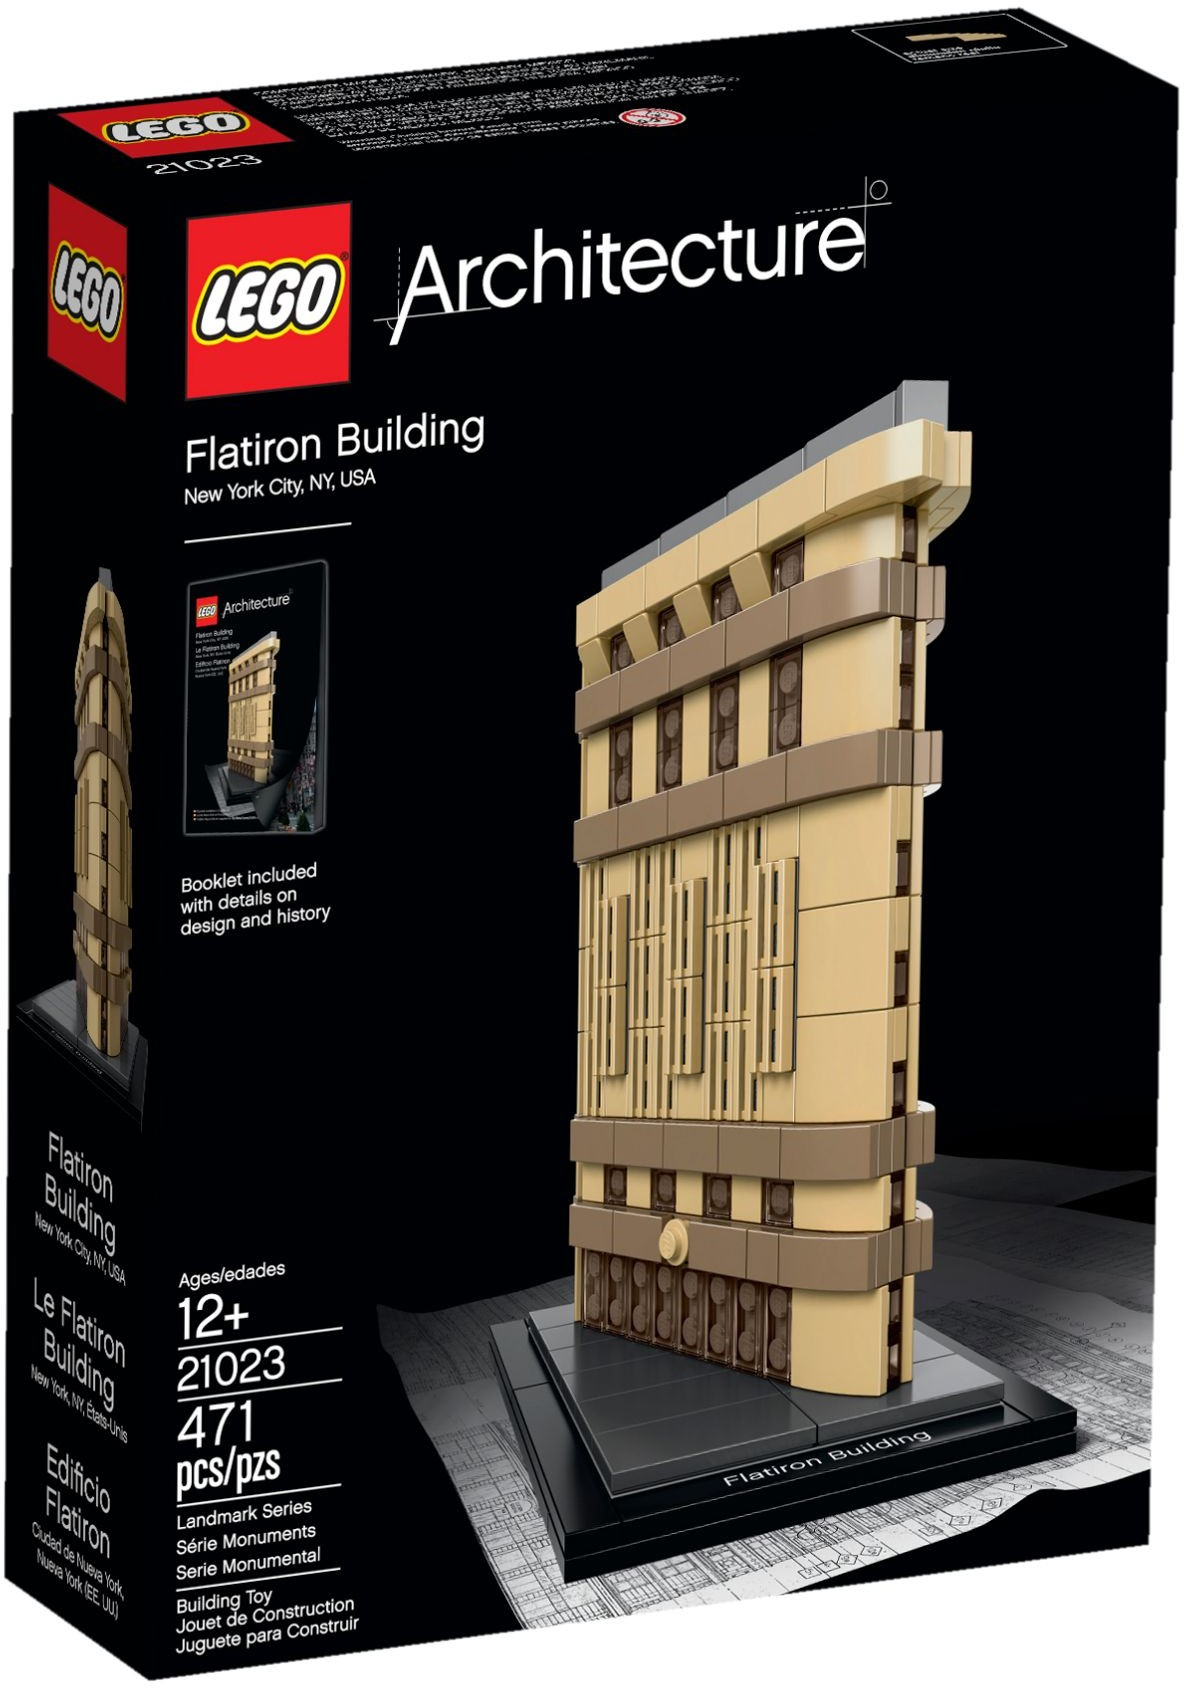 21023 LEGO® Flatiron Building, New York(năm 2015)